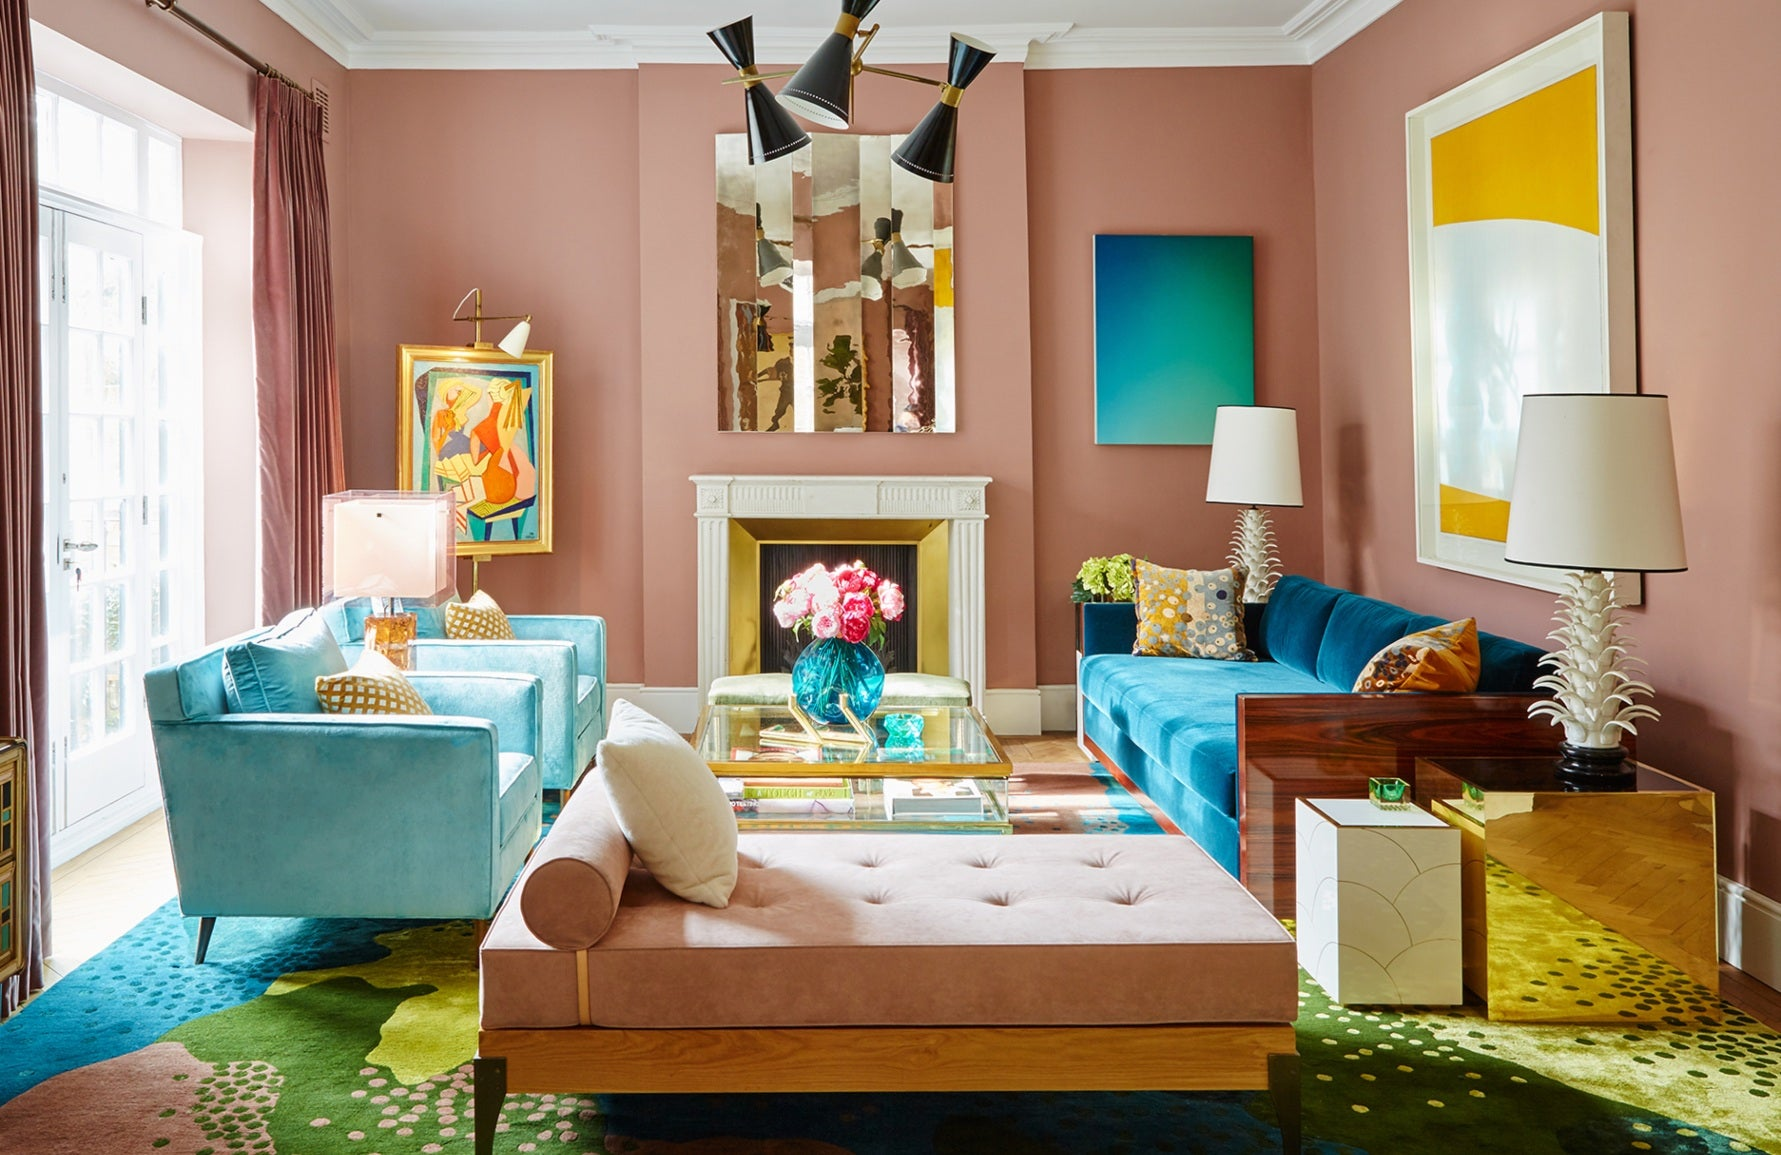 Colourful Interiors | Interior by Peter Mikic | Shop colourful decor on LuxDeco.com